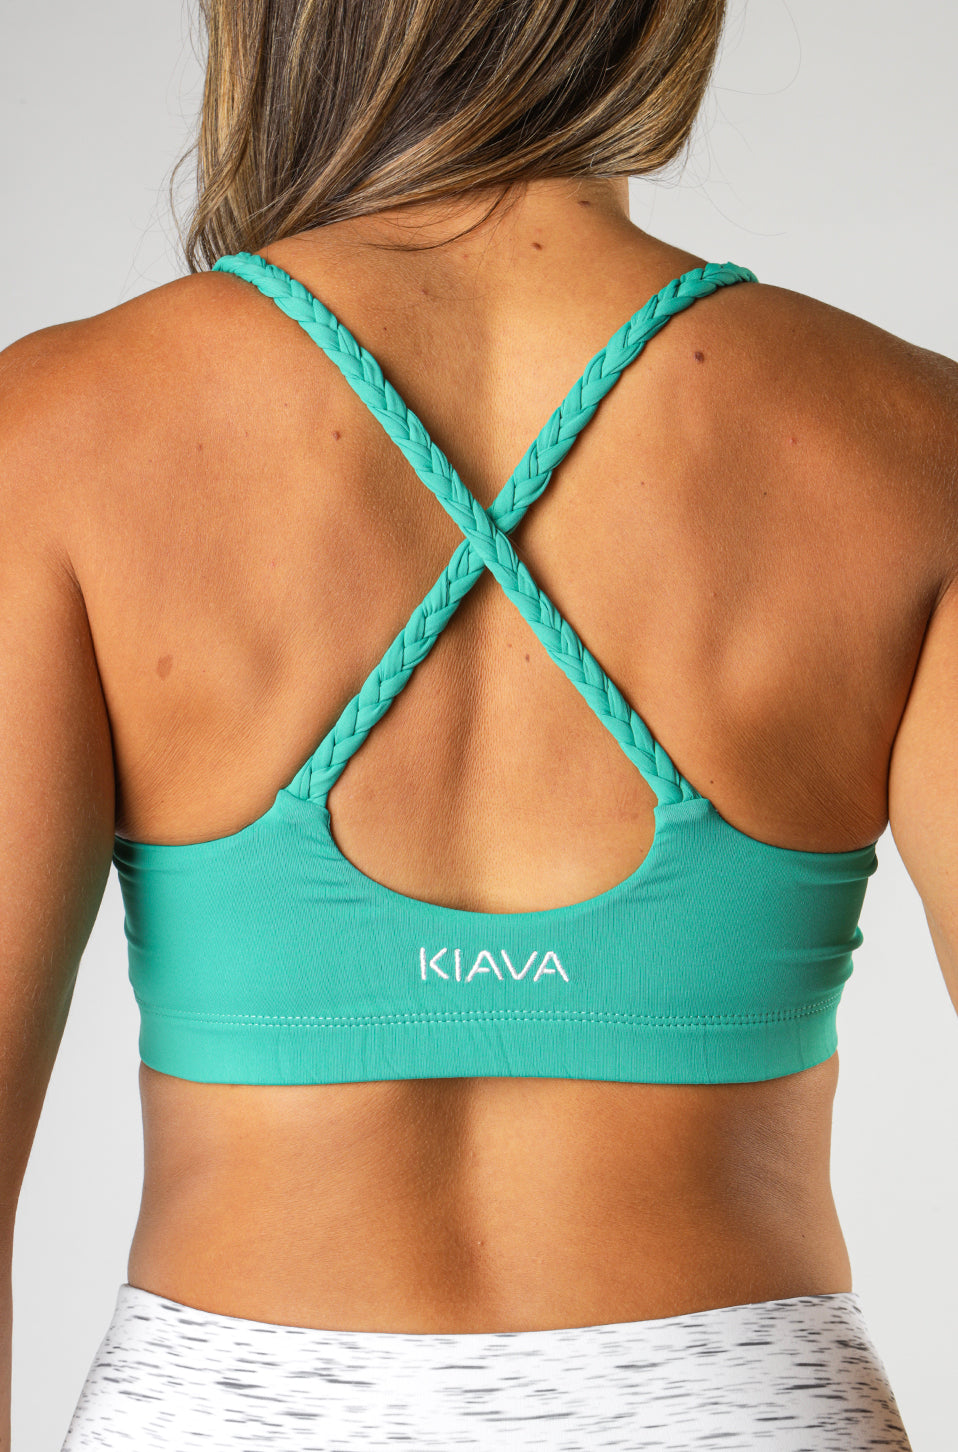 Battle Rope Bra- Medium Impact Support (Tropical Green)